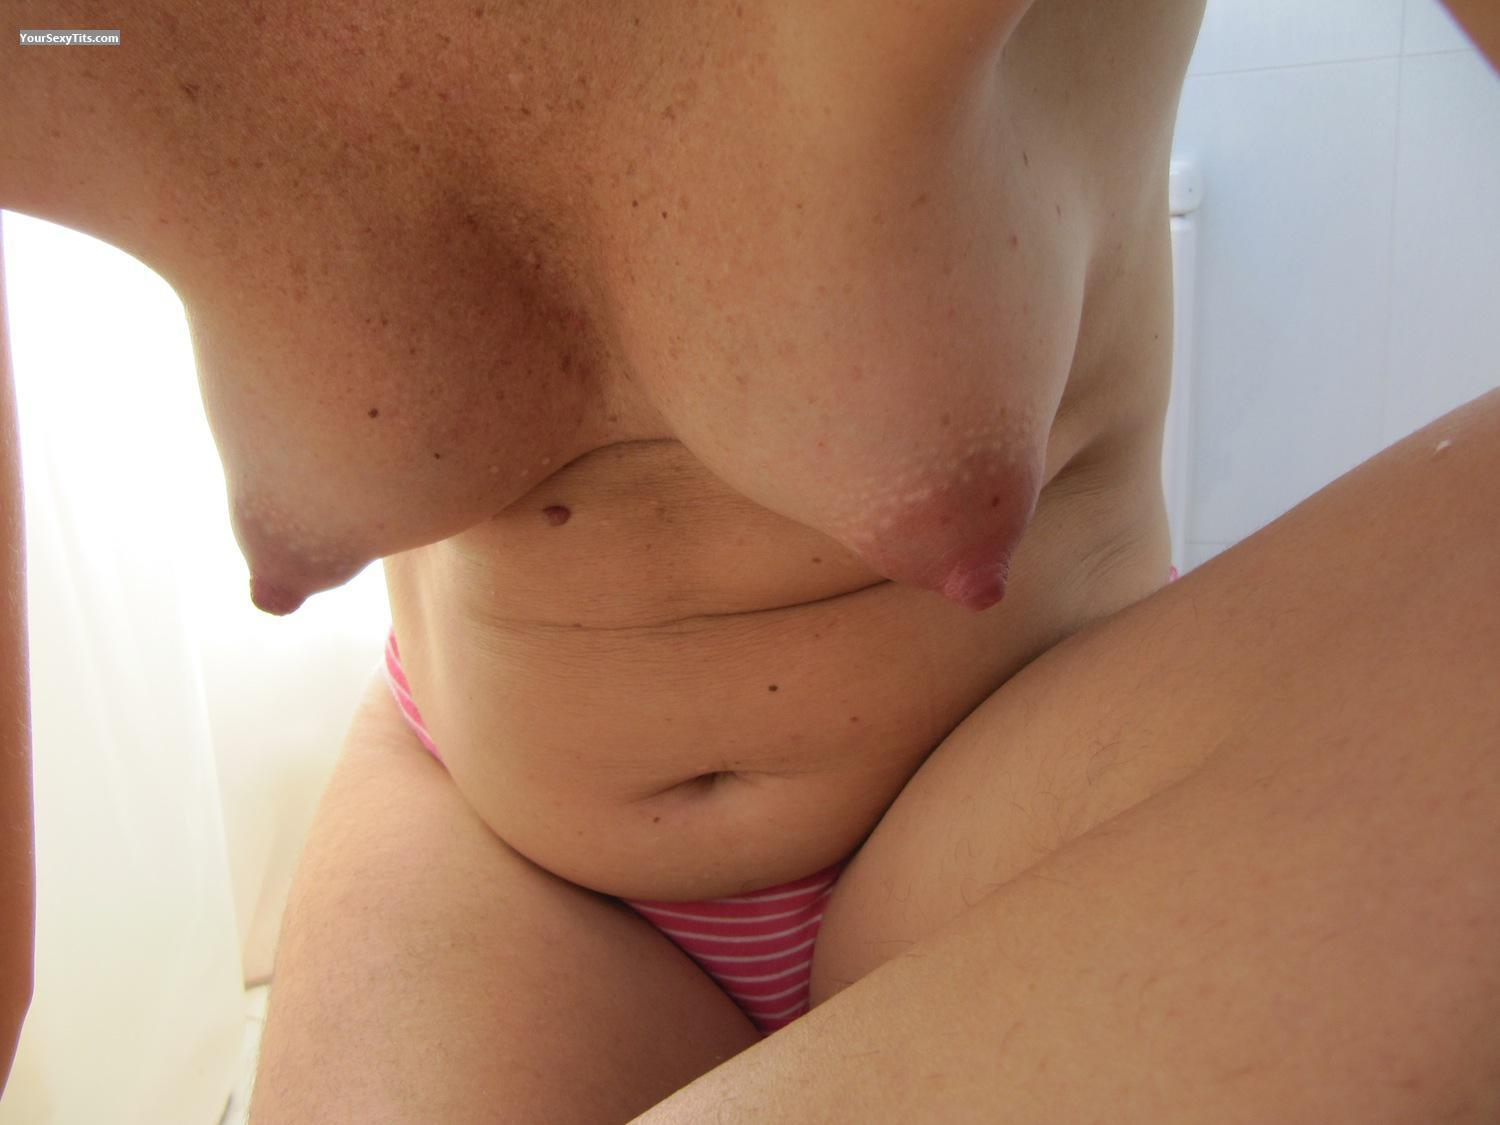 Tit Flash: Wife's Medium Tits - Geraldine from Spain